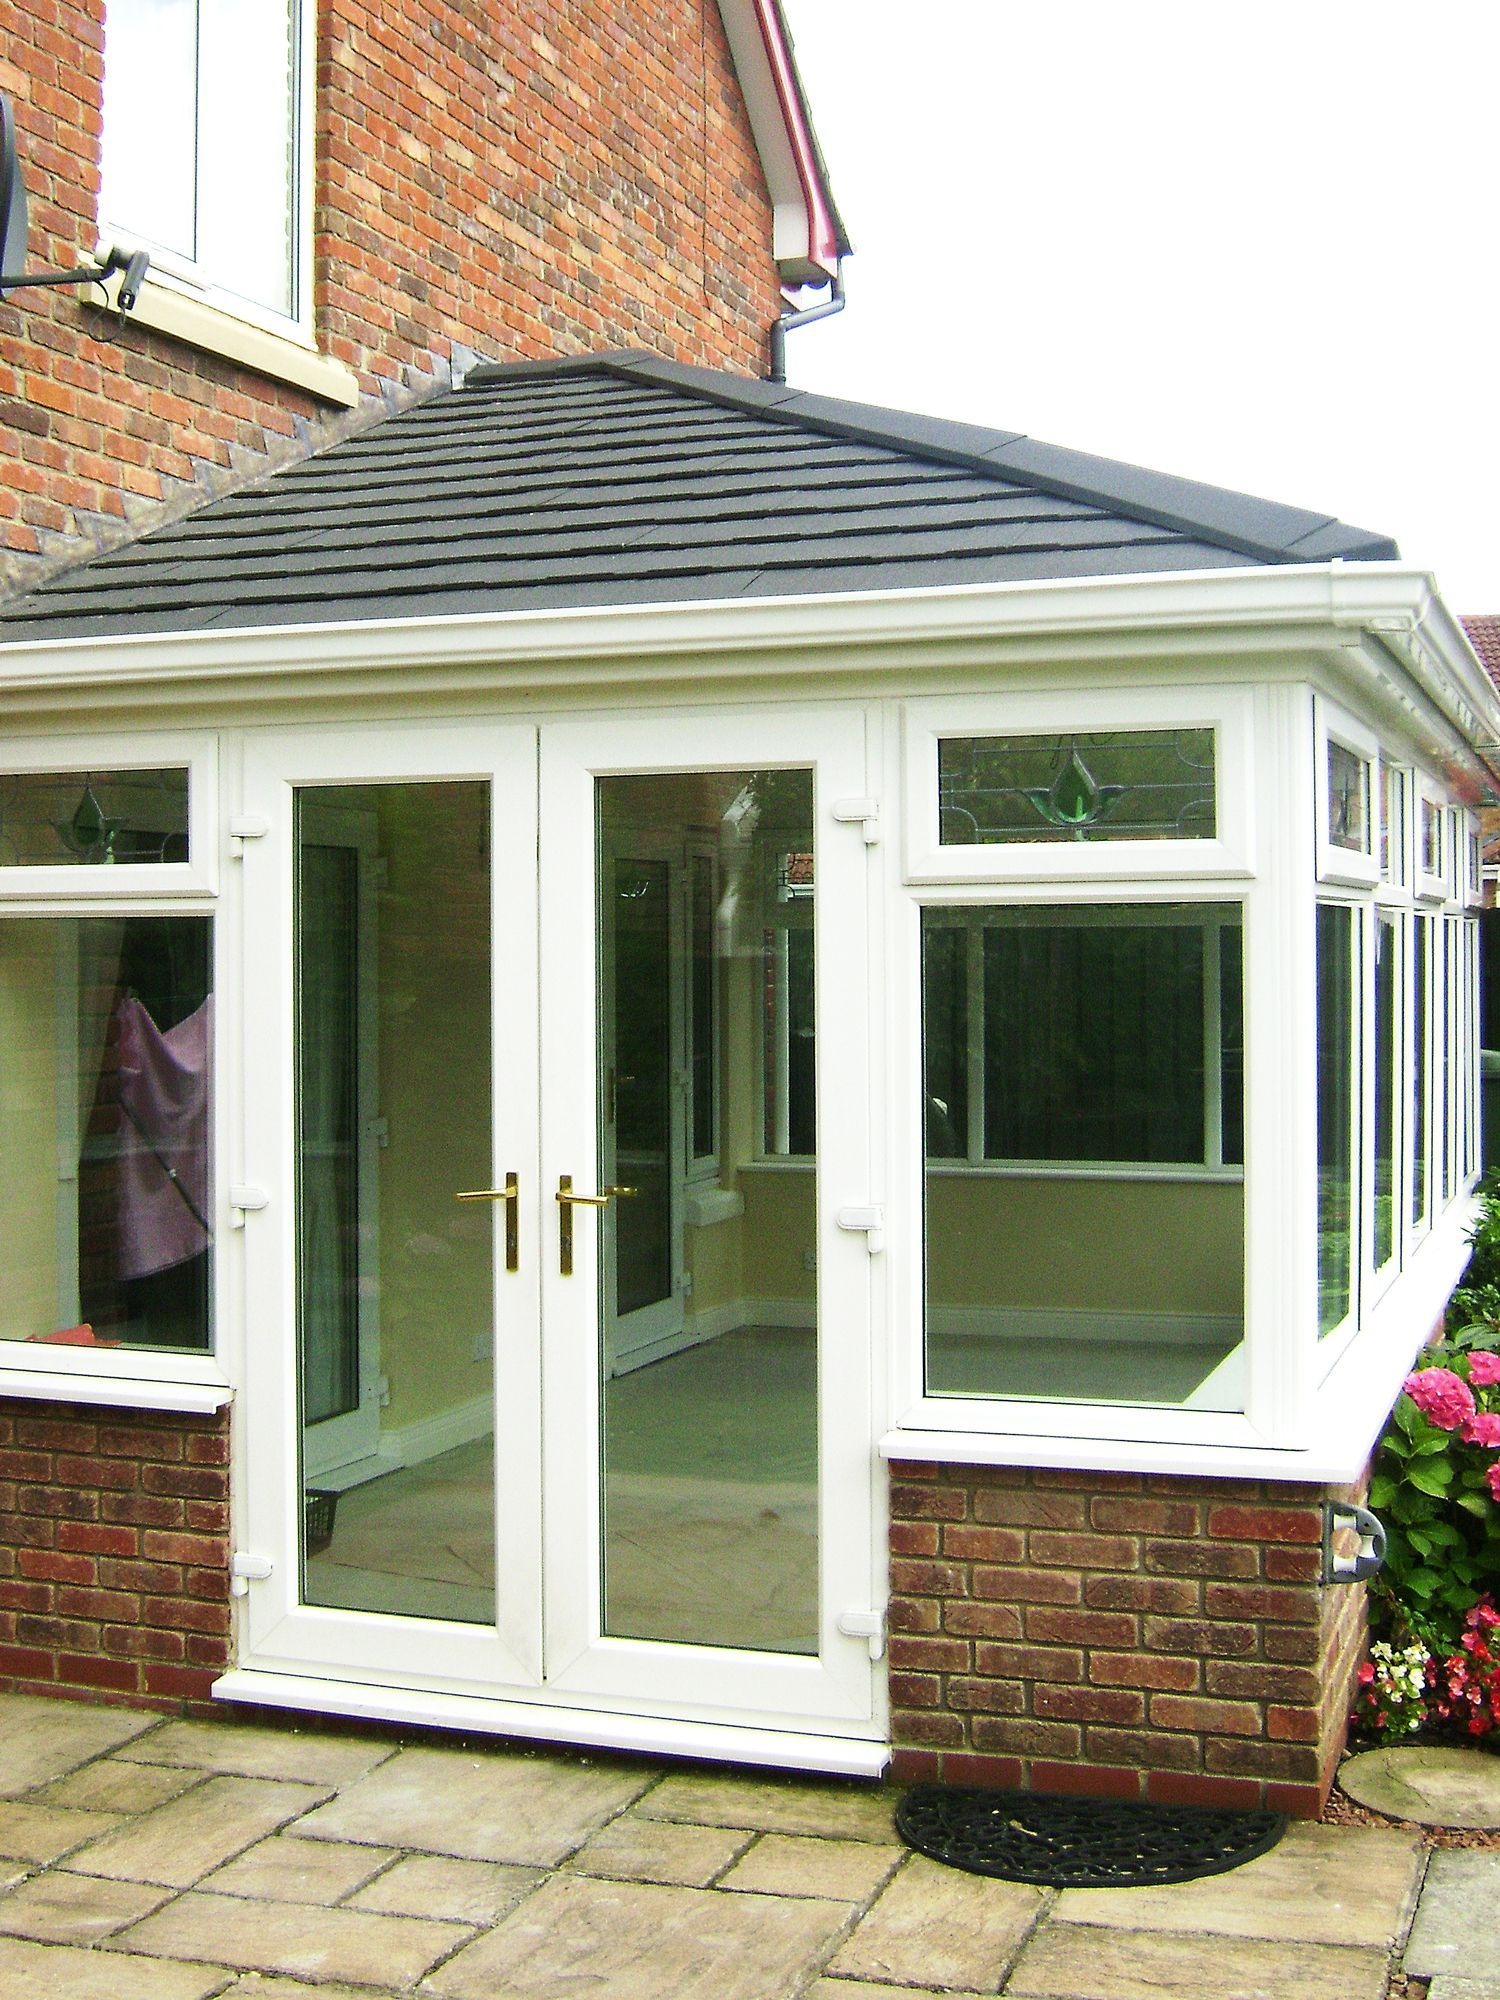 Large Tiled Conservatory Roof Supalite With Charcoal Metrotiles Installed On Top Of Existin Garden Room Extensions Conservatory Roof Conservatory Dining Room